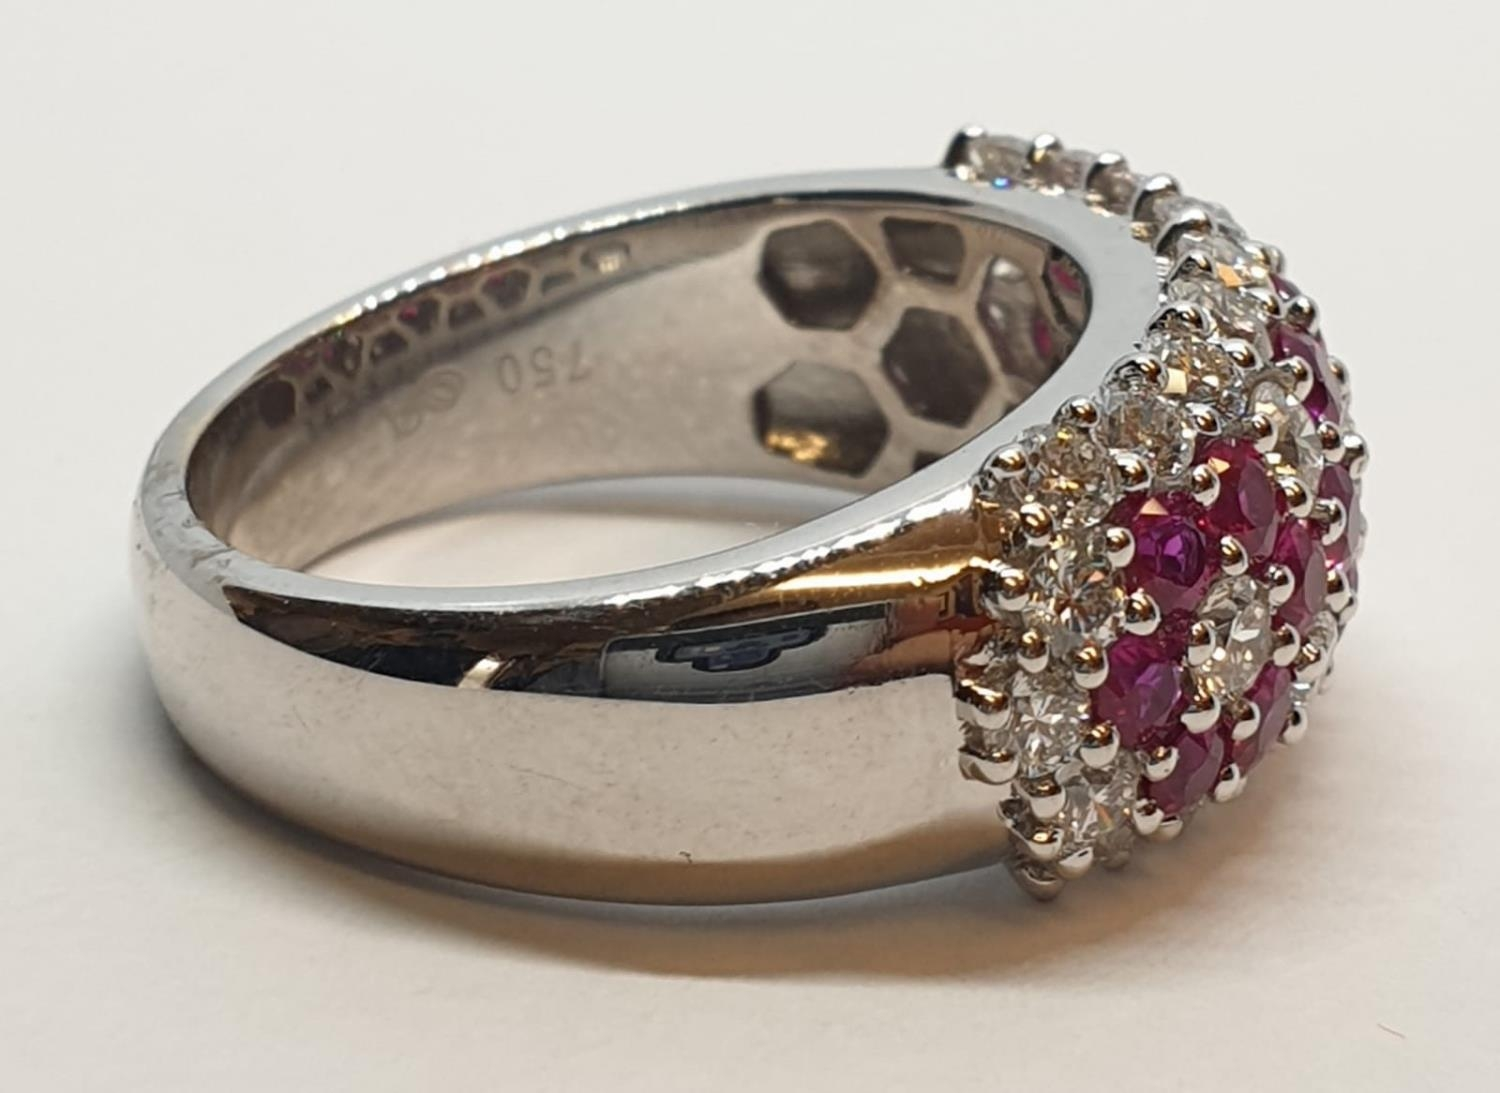 18ct white gold ring with over 1ct ruby and 1.8ct diamonds in flower design, weight 9.39g and size M - Image 7 of 11